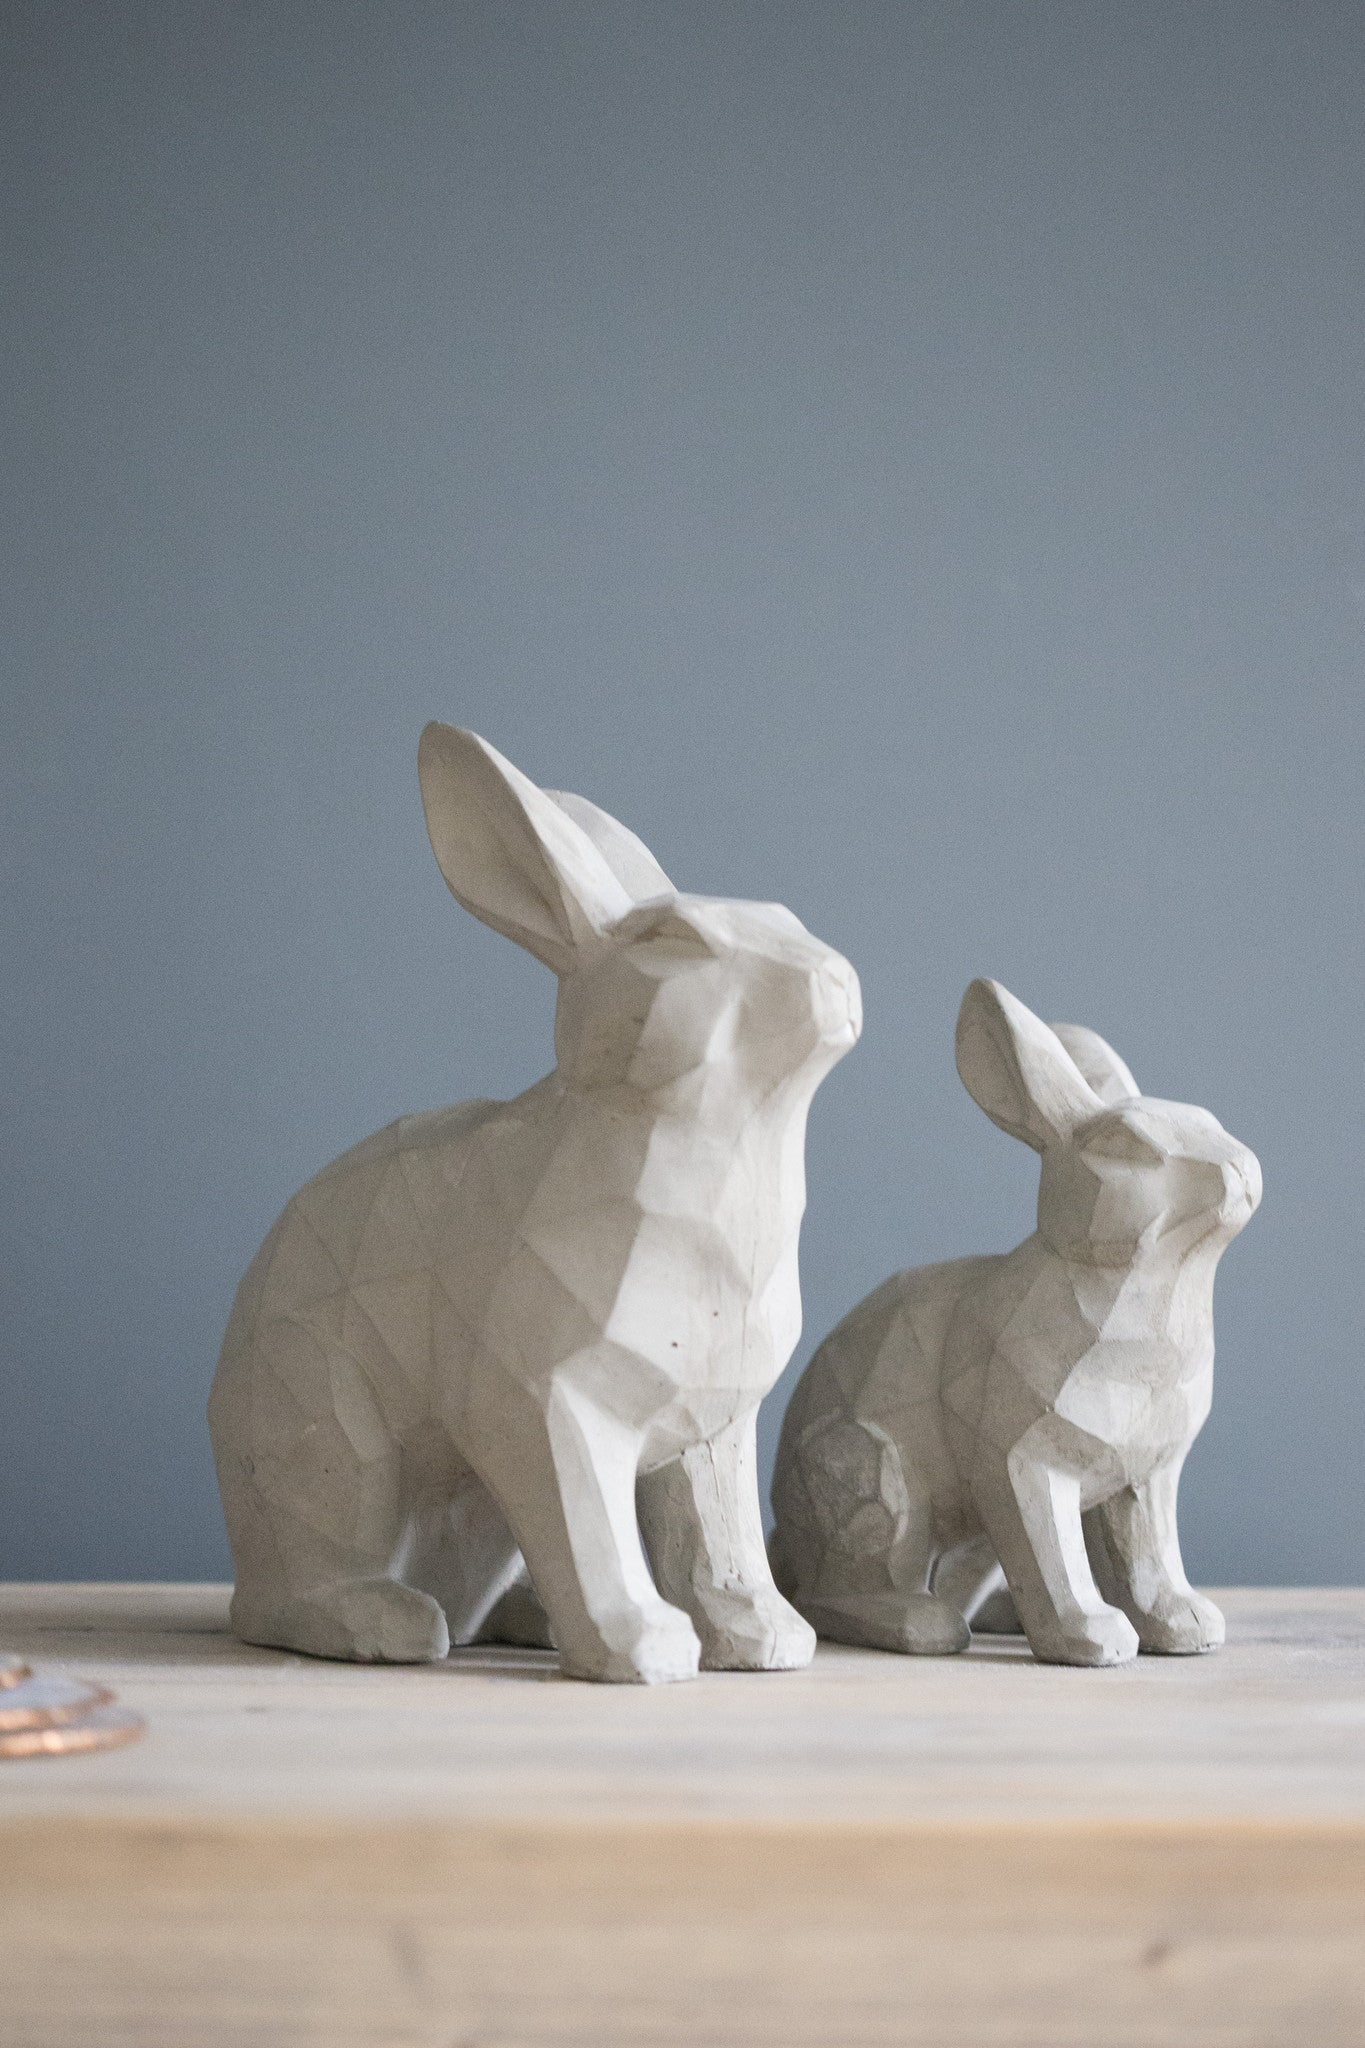 Large and small grey resin rabbits together on a shelf